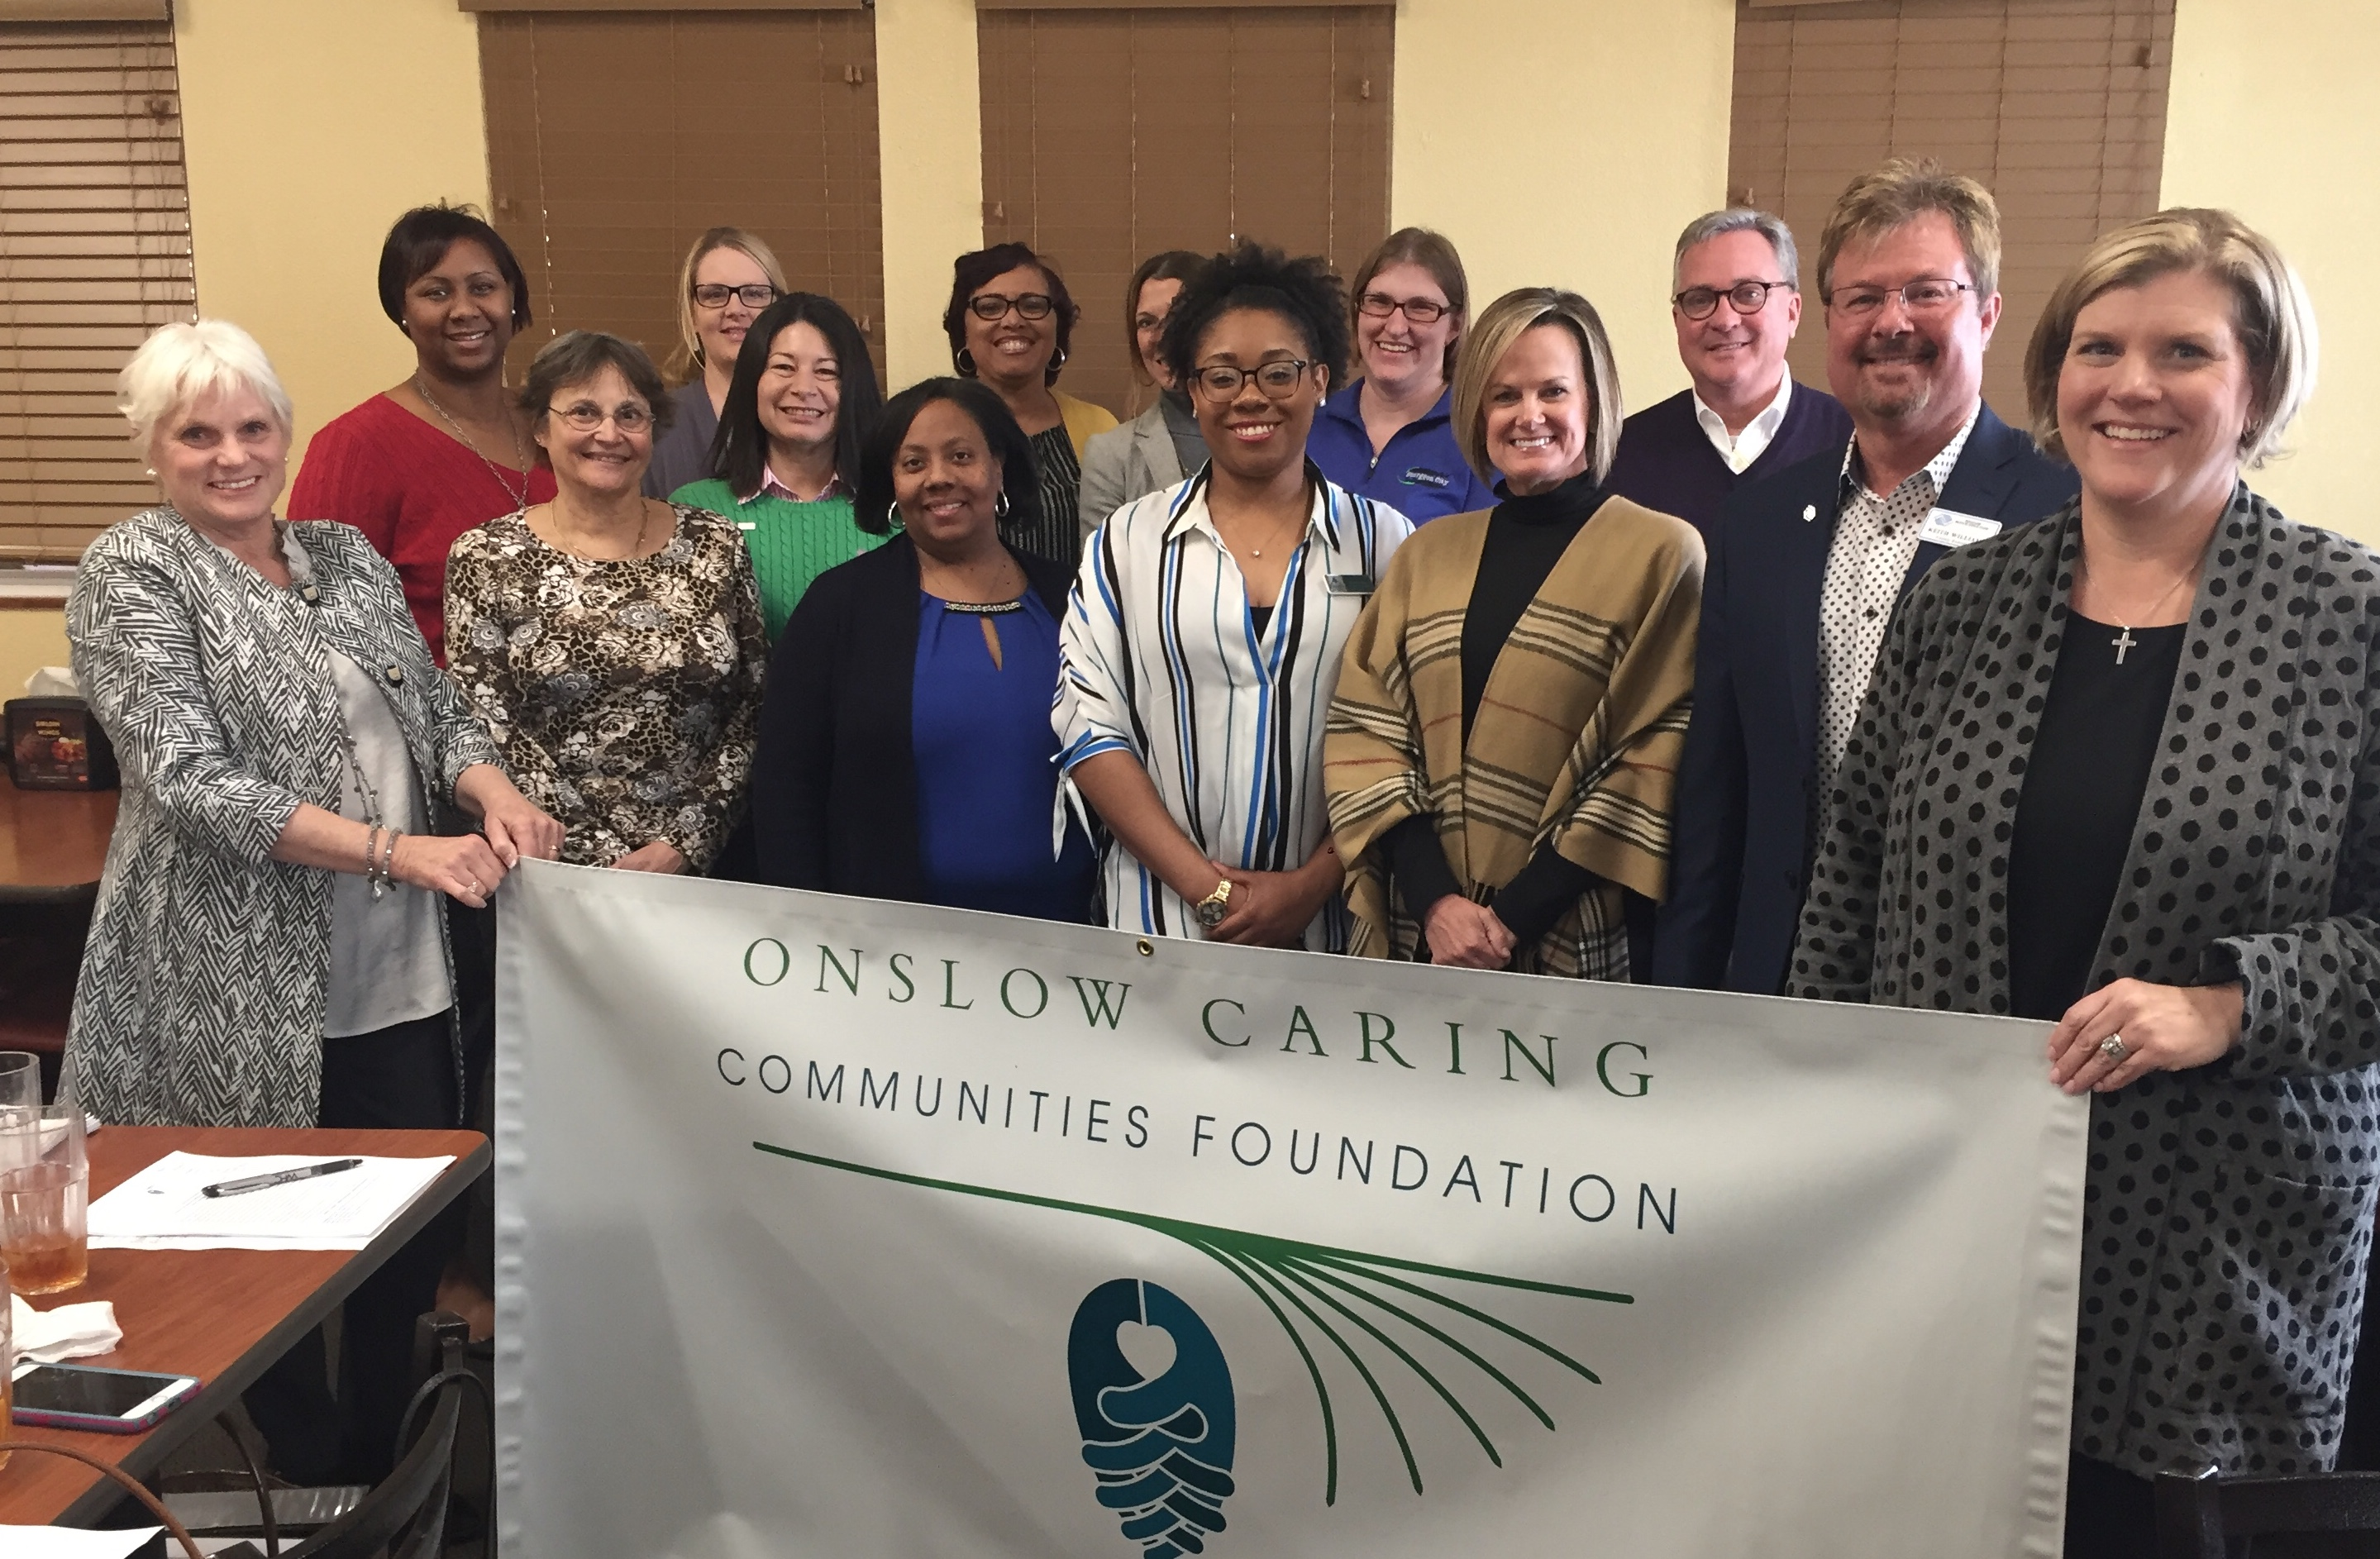 Onslow Caring Communities Foundation board members and grantee representatives gather for a photo at this year's grant awards ceremony where $34,880 in local grants were awarded.